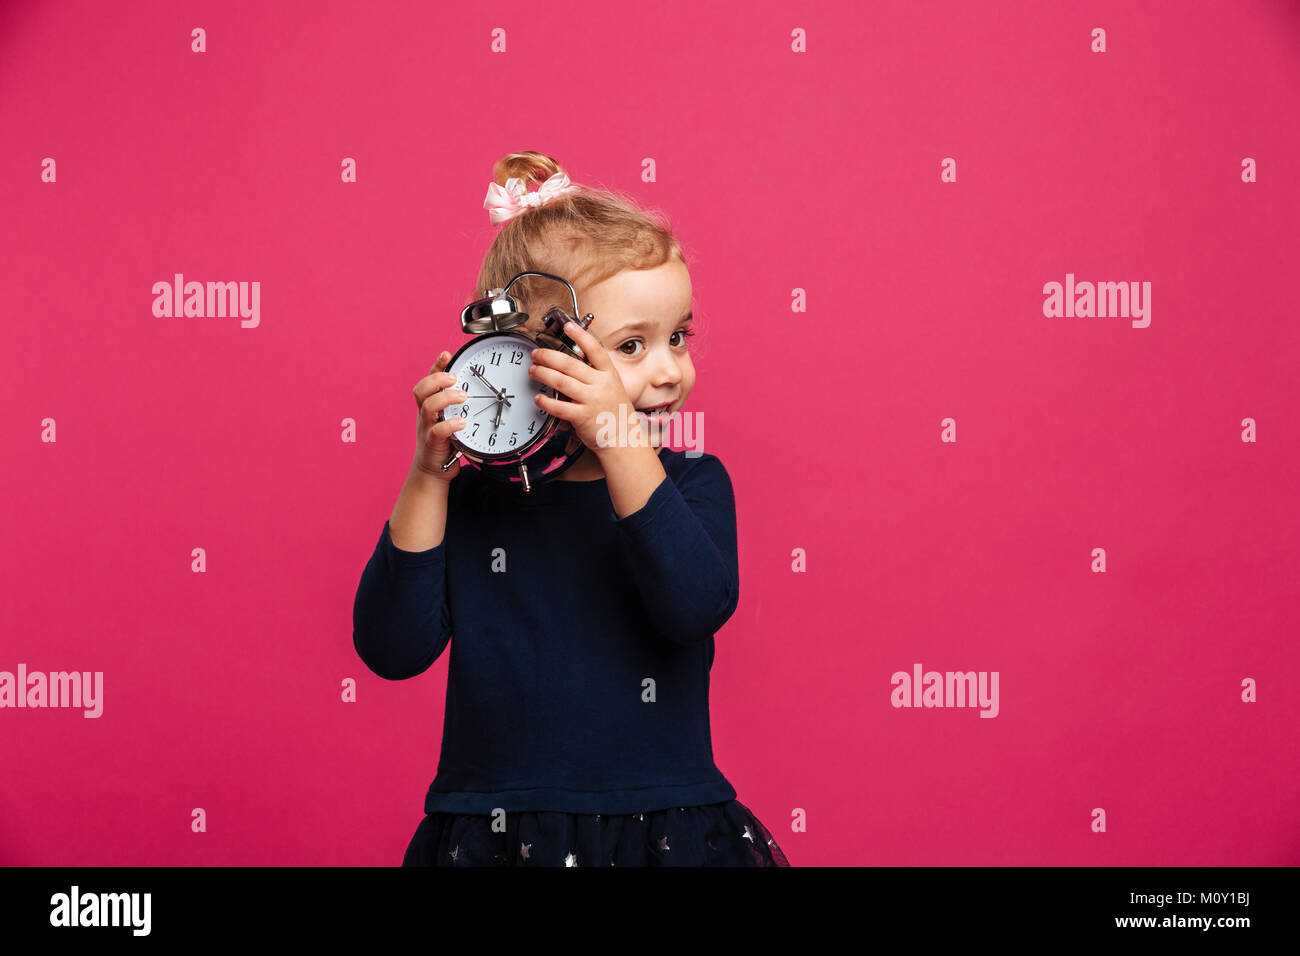 Intrigued young blonde girl holding alarm clock in studio over pink background - Stock Image